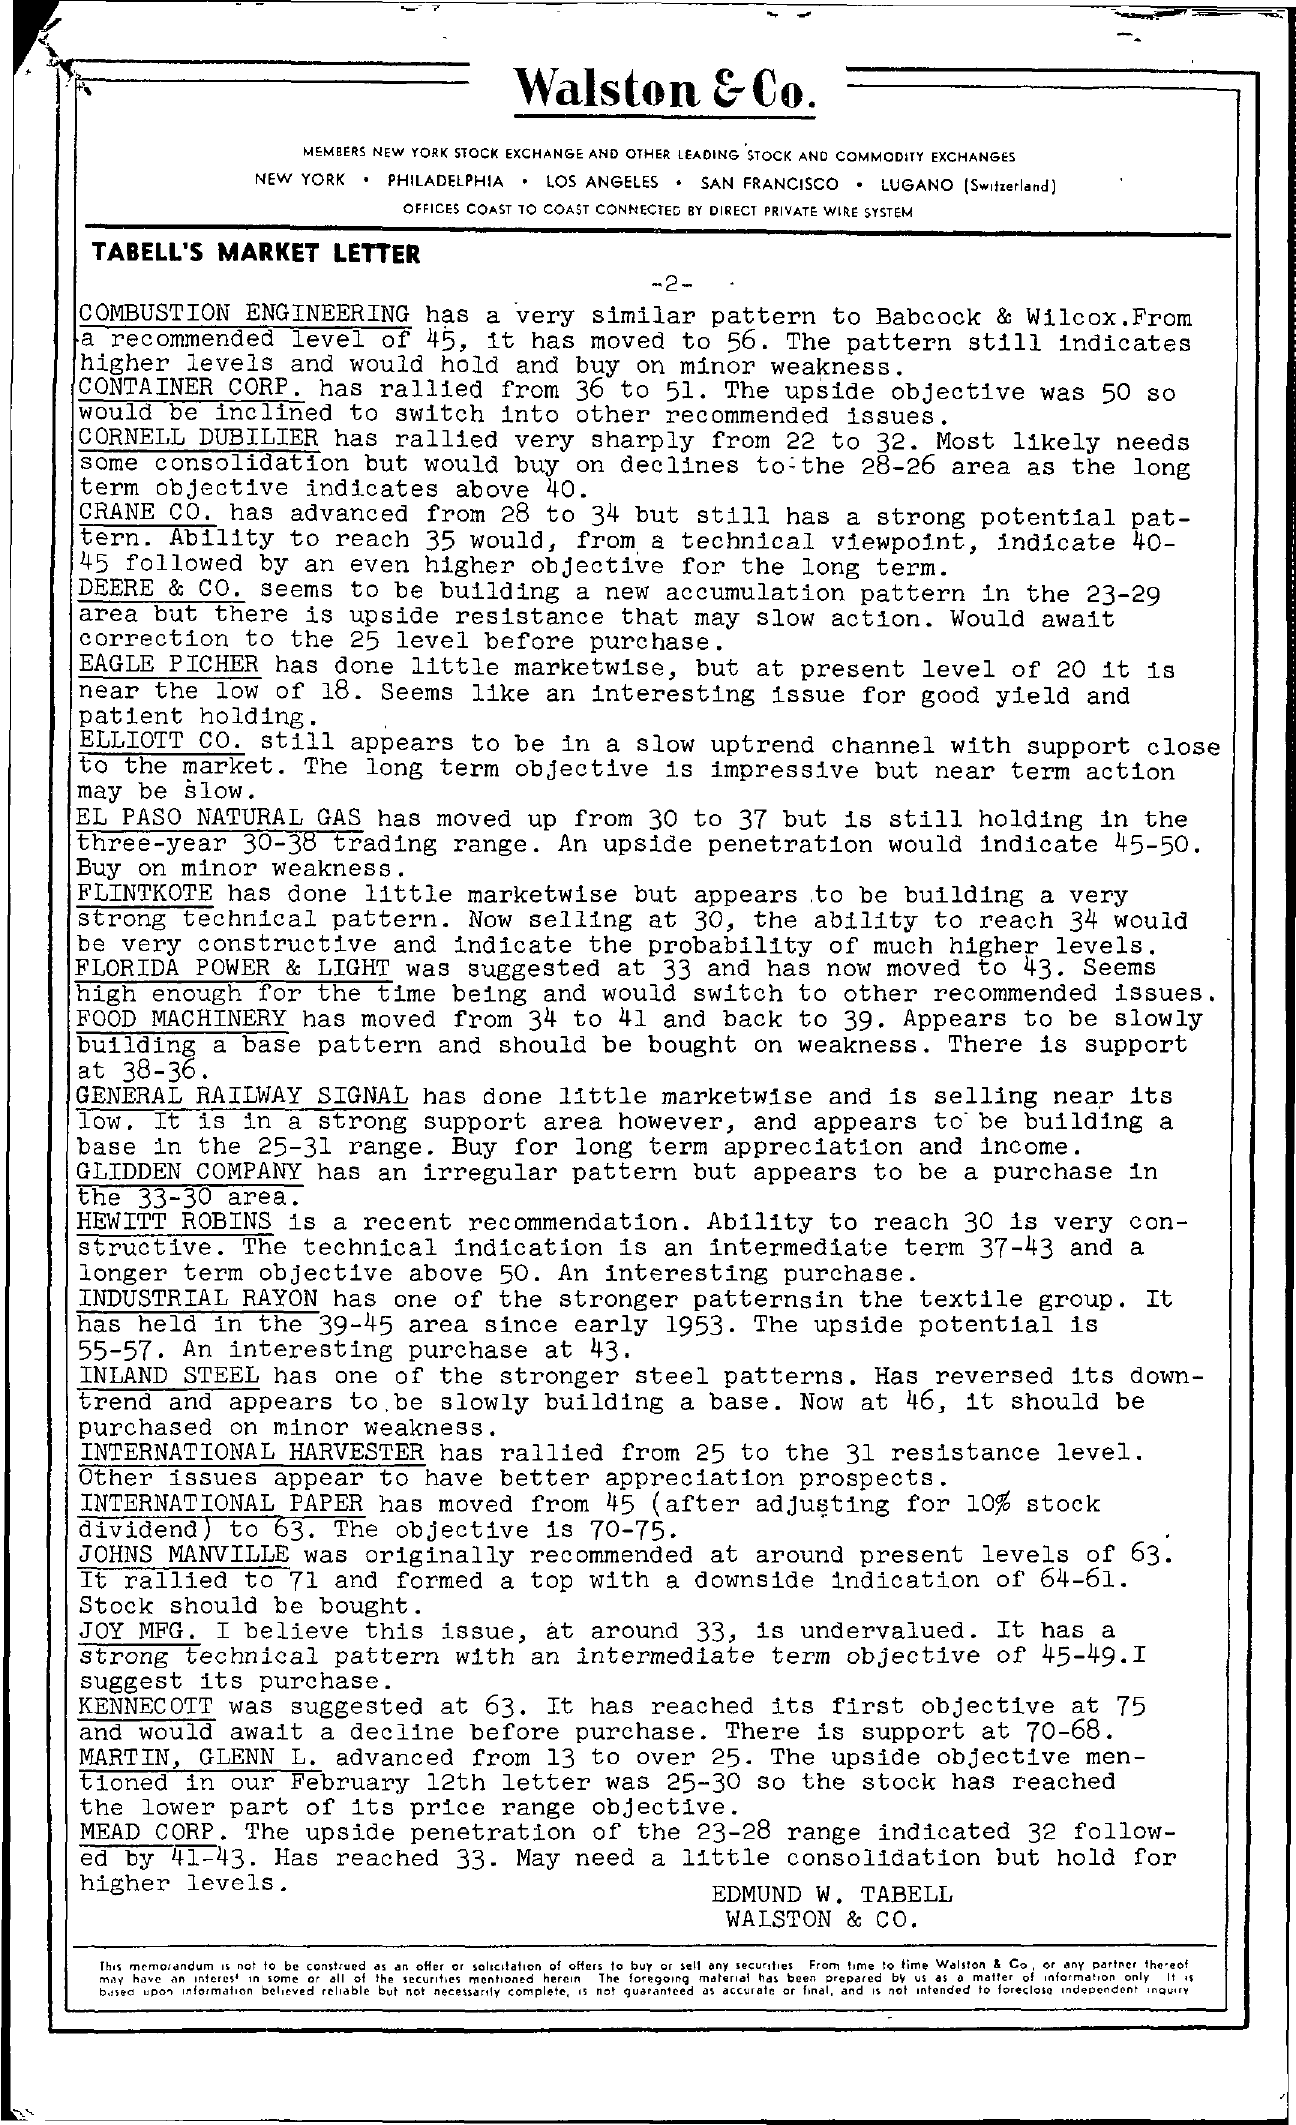 Tabell's Market Letter - April 02, 1954 page 2